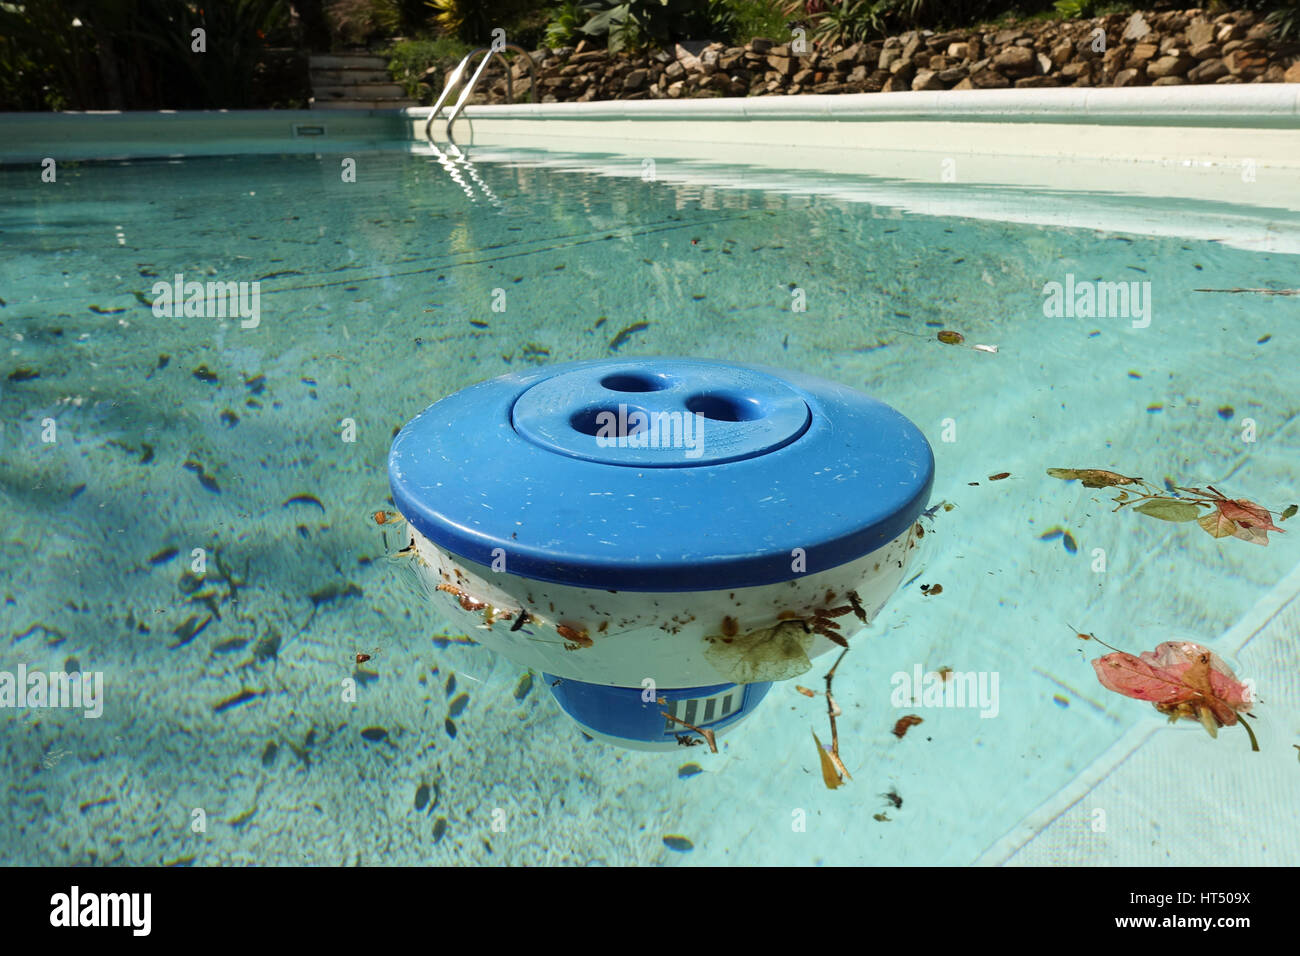 Dirty Swimming Pool Stock Photos Dirty Swimming Pool Stock Images Alamy